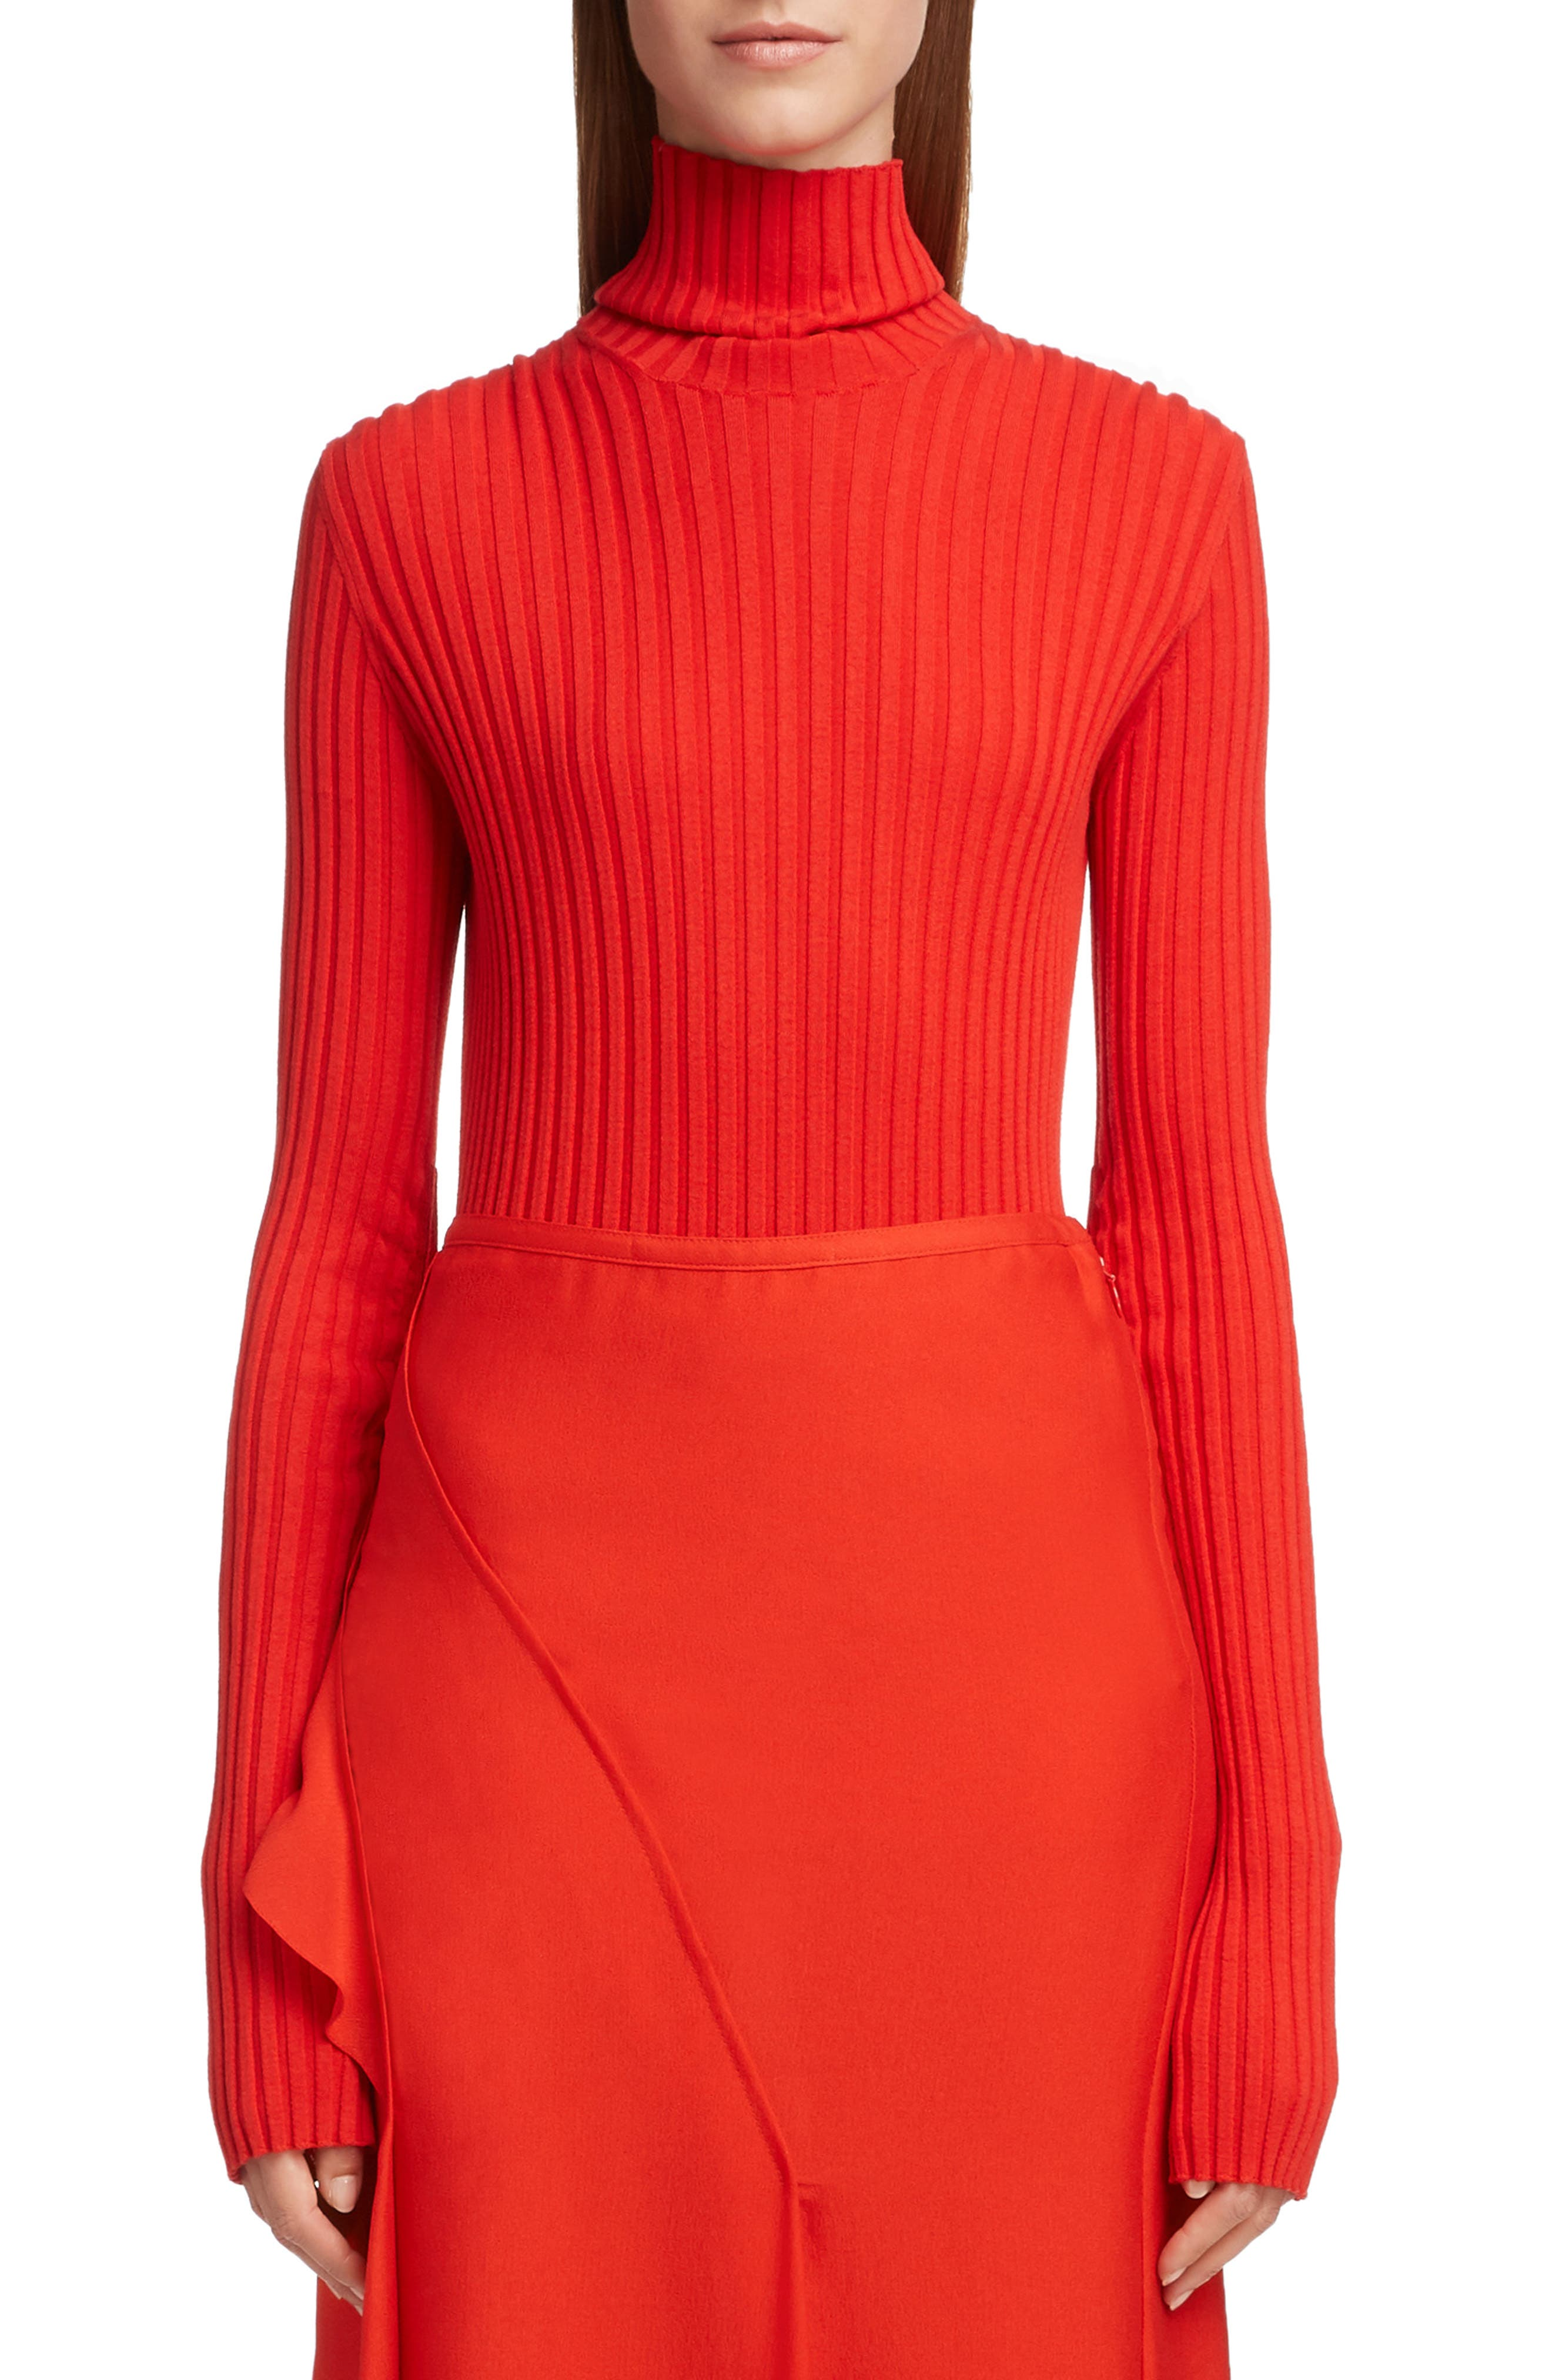 VICTORIA BECKHAM Gathered Sleeve Rib Knit Turtleneck Sweater, Main, color, BRIGHT RED